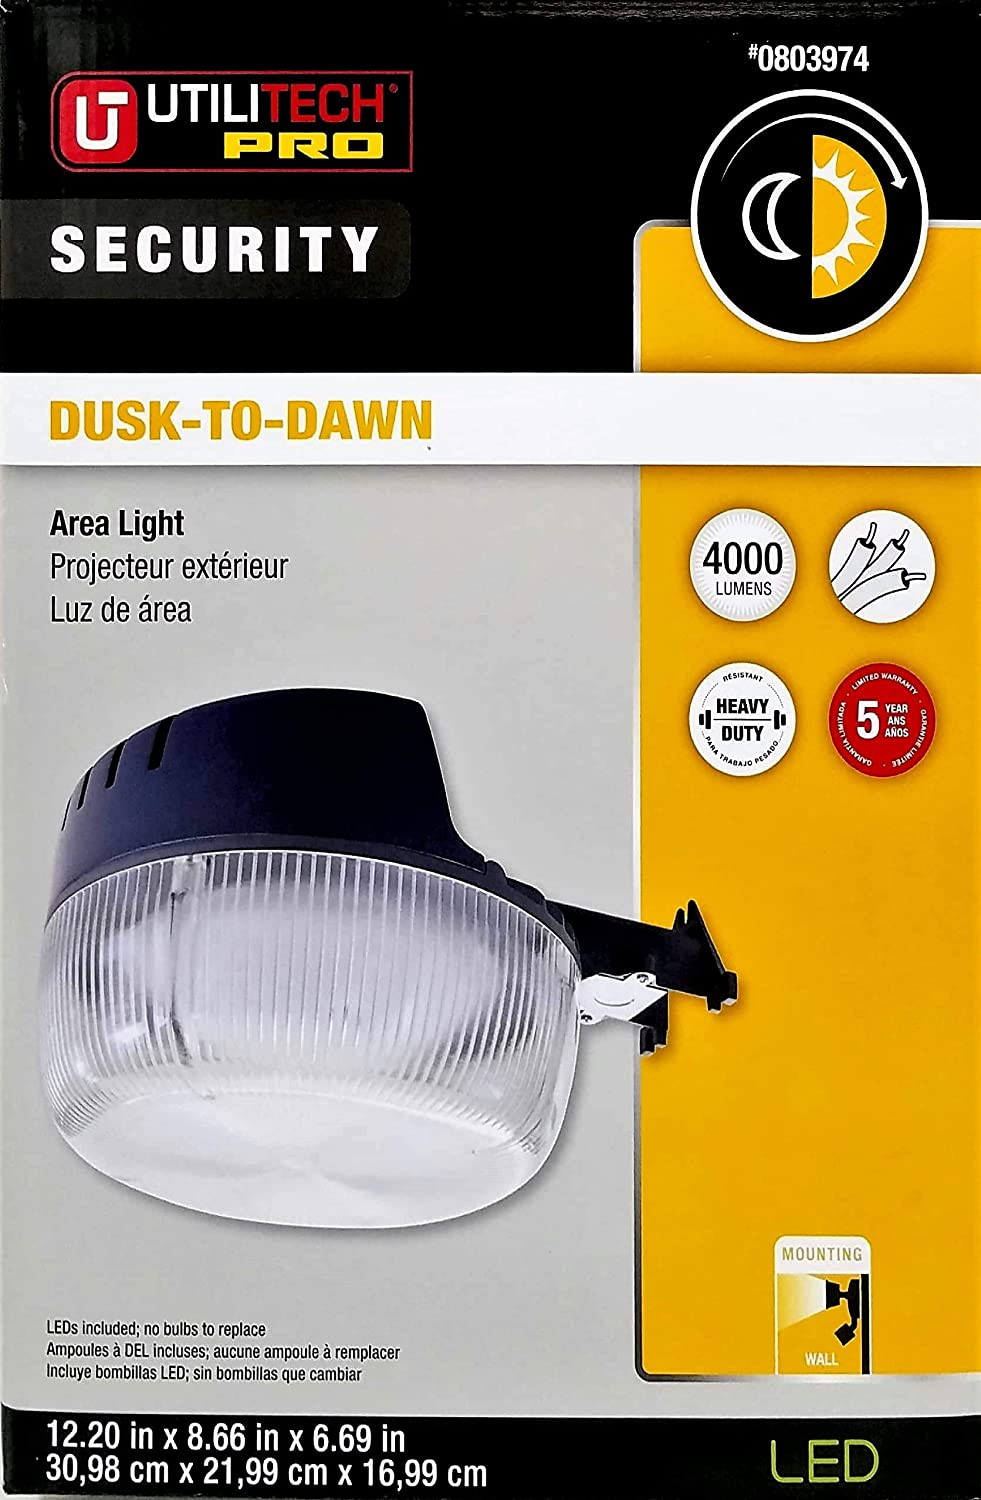 Utilitech Pro Dusk-to-Dawn Outdoor Security Area Light LED 4000 Lumens 48 Watts, 6301-PHO: Amazon.com: Industrial & Scientific